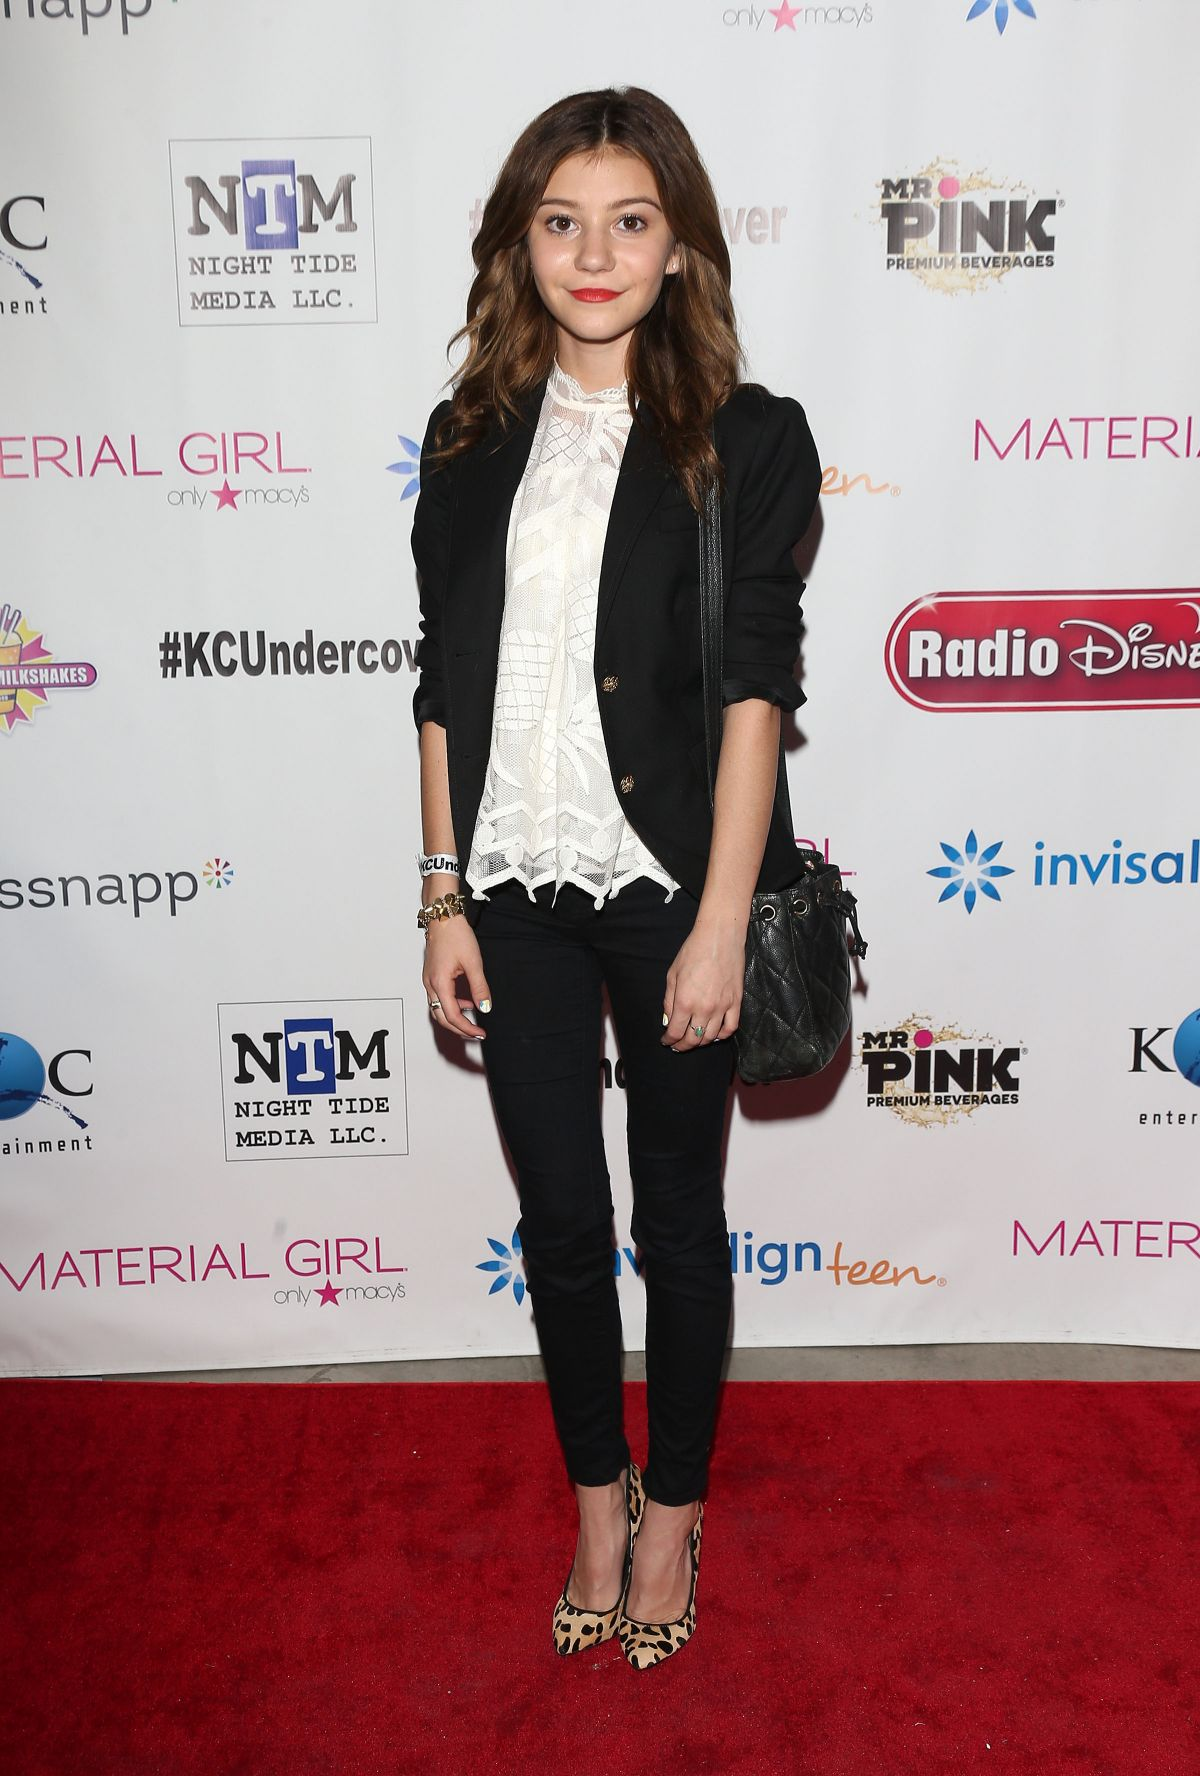 GENEVIEVE HANNELIUS at K.C. Undercover Premiere Party in Hollywood